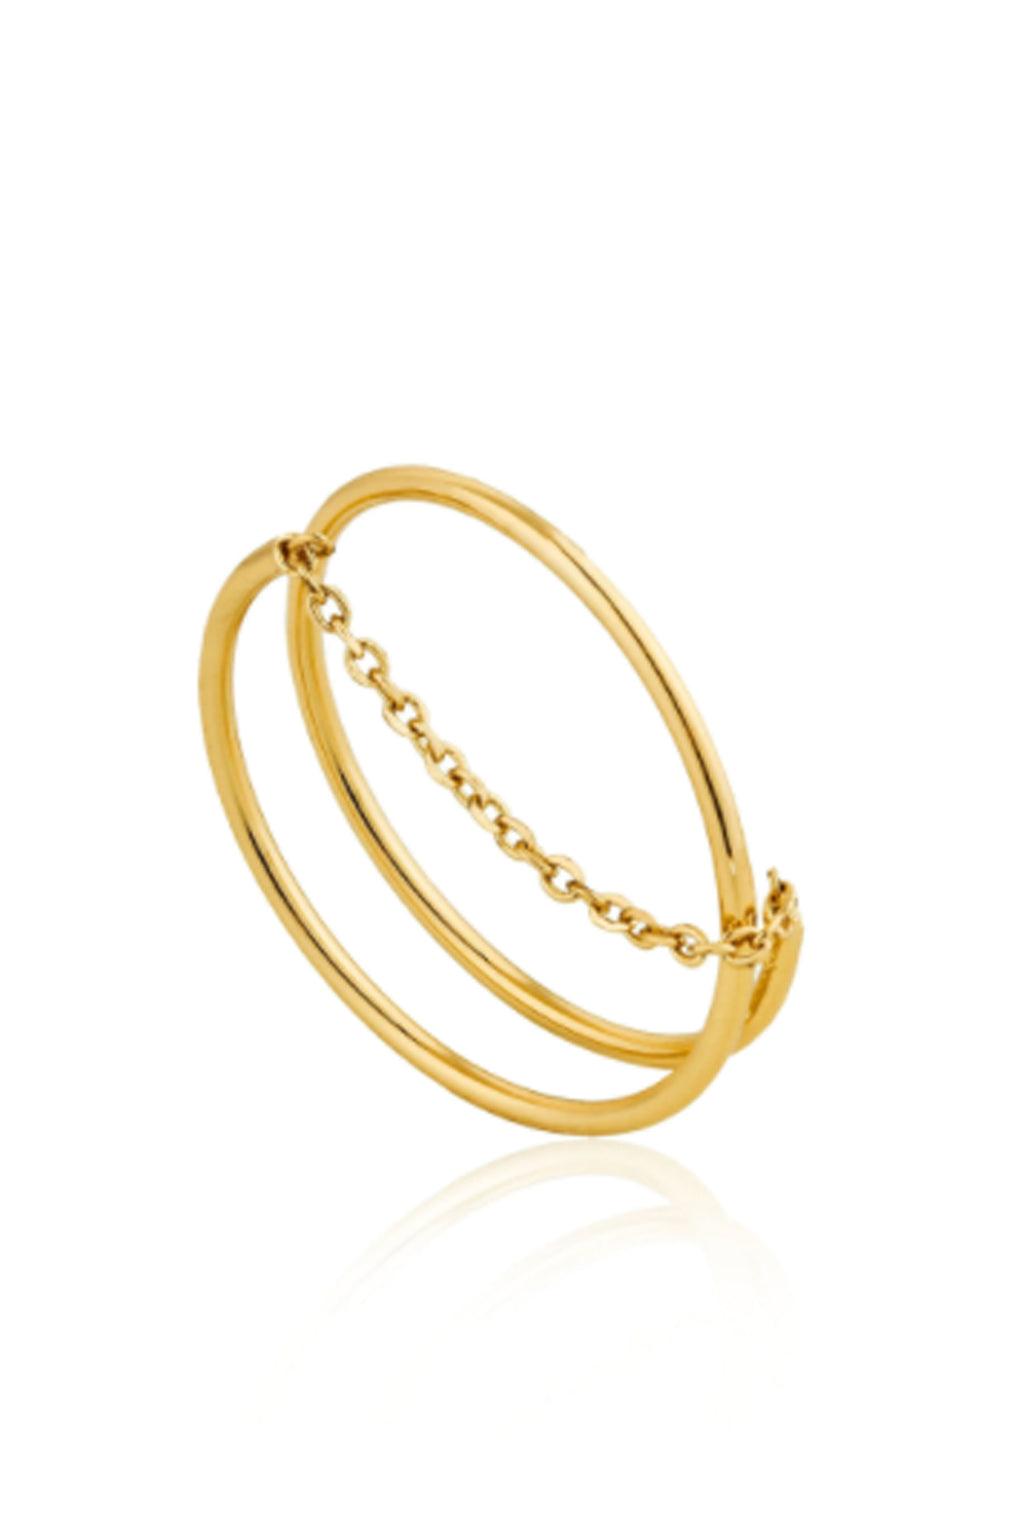 Ania Haie Twist Chain Ring - The Mercantile London